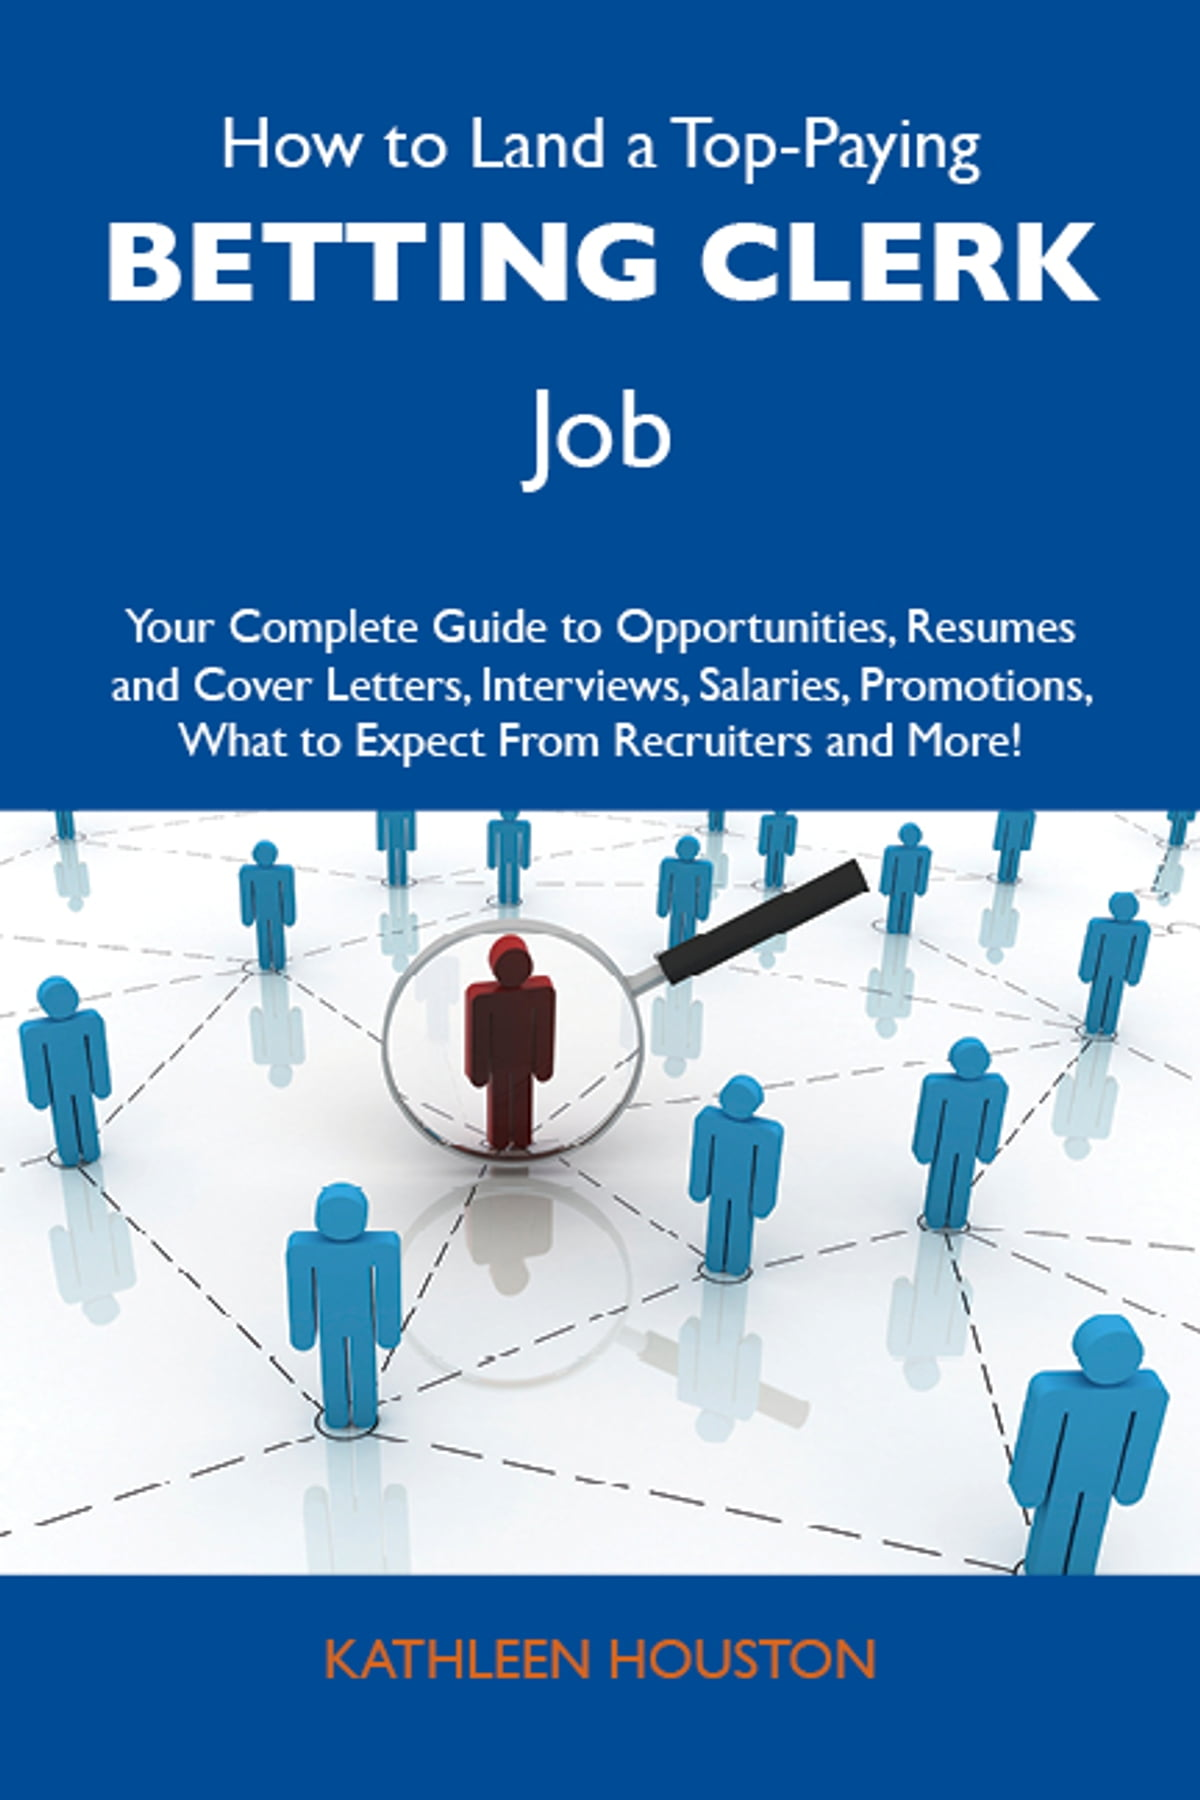 How to Land a Top-Paying Betting clerk Job: Your Complete Guide to  Opportunities, Resumes and Cover Letters, Interviews, Salaries, Promotions,  What to ...